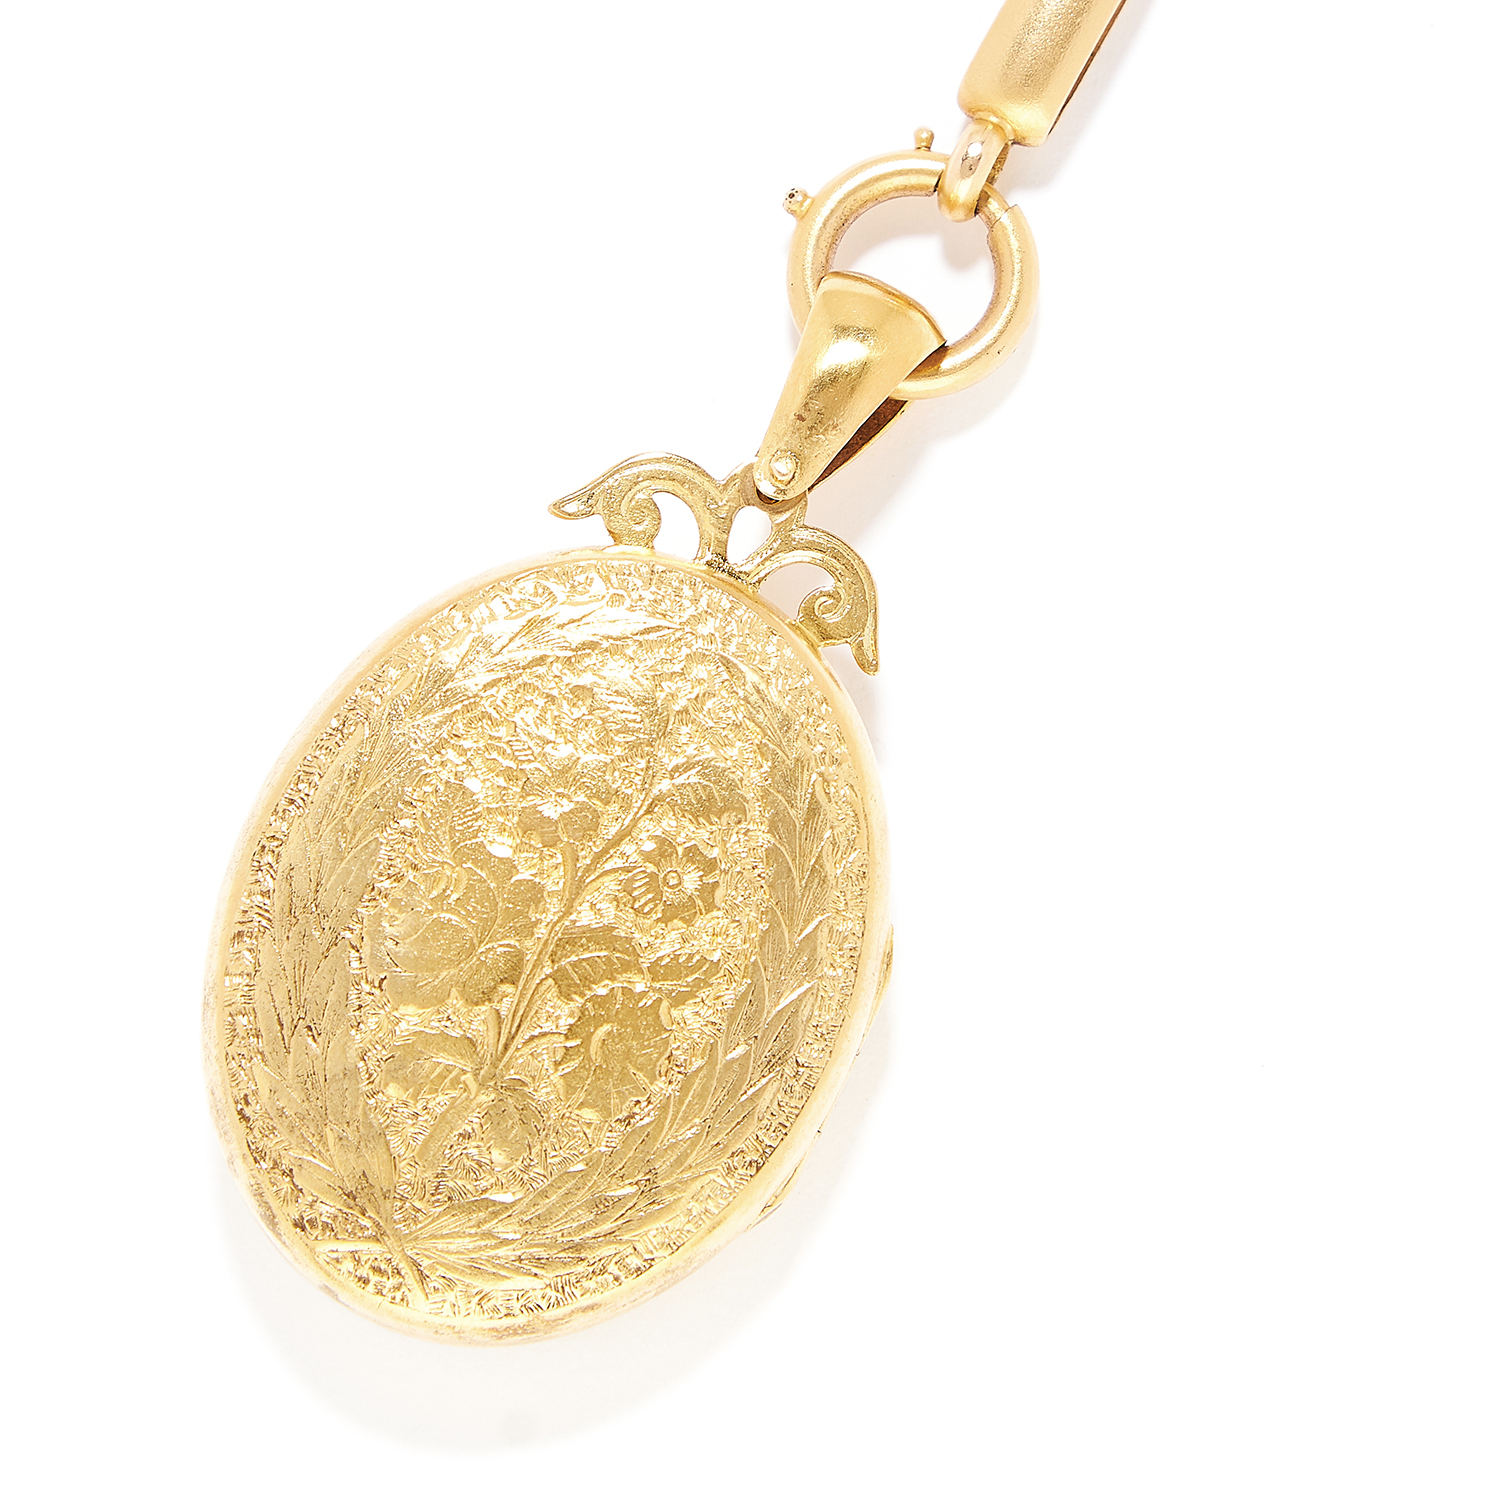 ANTIQUE RUBY AND DIAMOND LOCKET AND CHAIN in high carat yellow gold, the locket is set with rose cut - Bild 3 aus 3